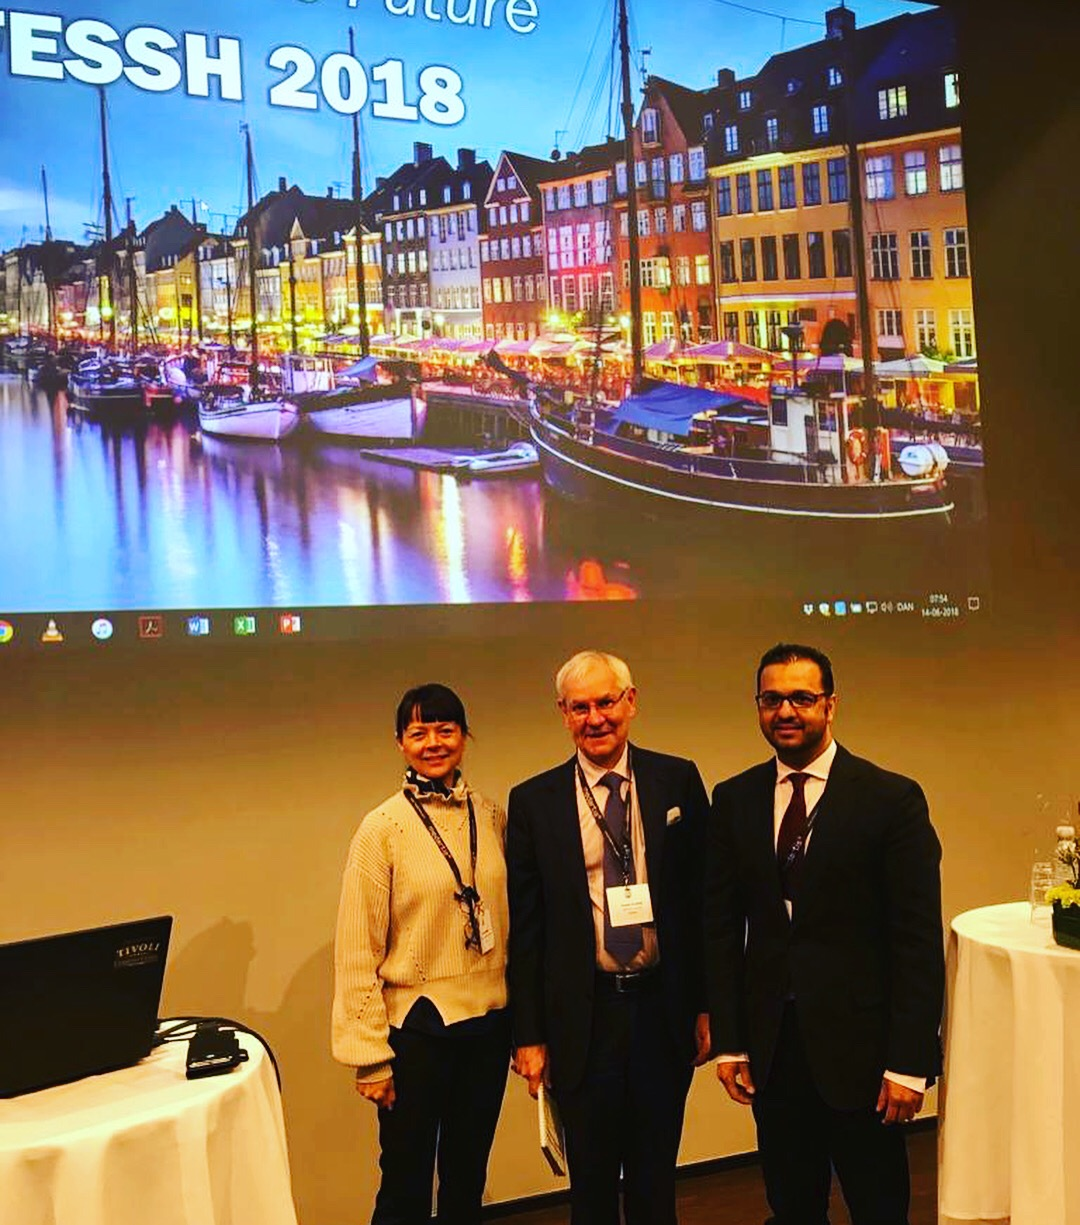 Wide Awake Hand Surgery Seminar FESSH Conference Copenhagen 2018